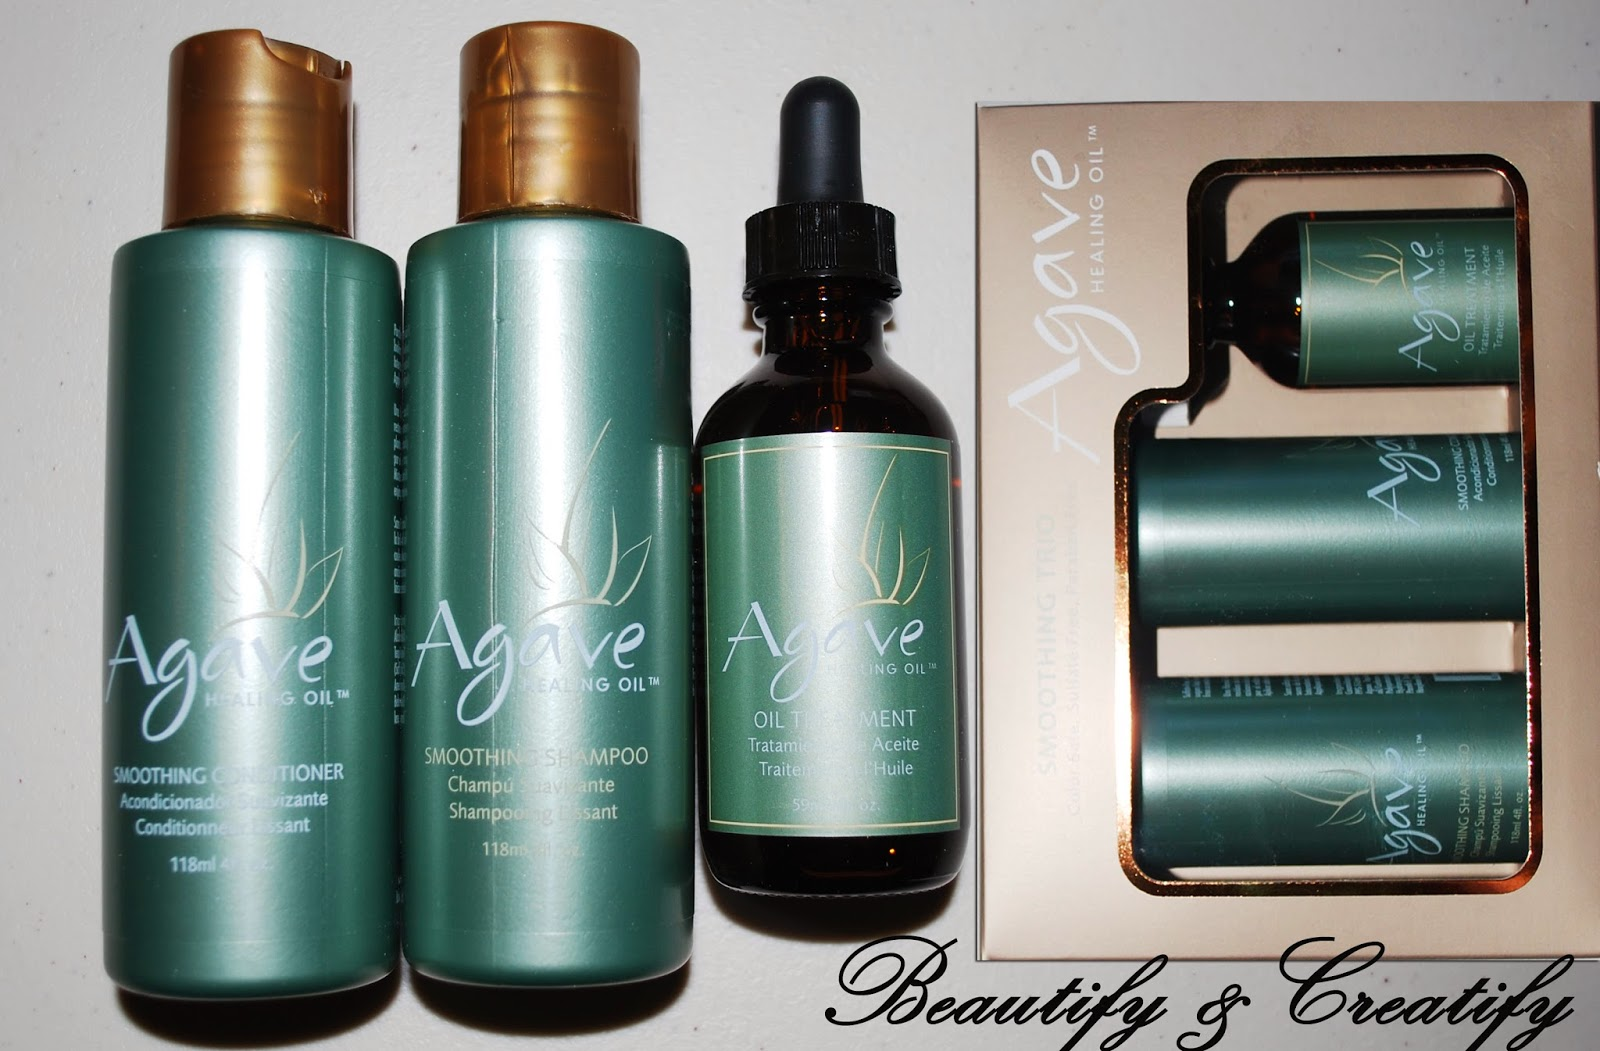 Healing Treatment Frizzy Hair Remedy Agave Oil Healing Treatment Review